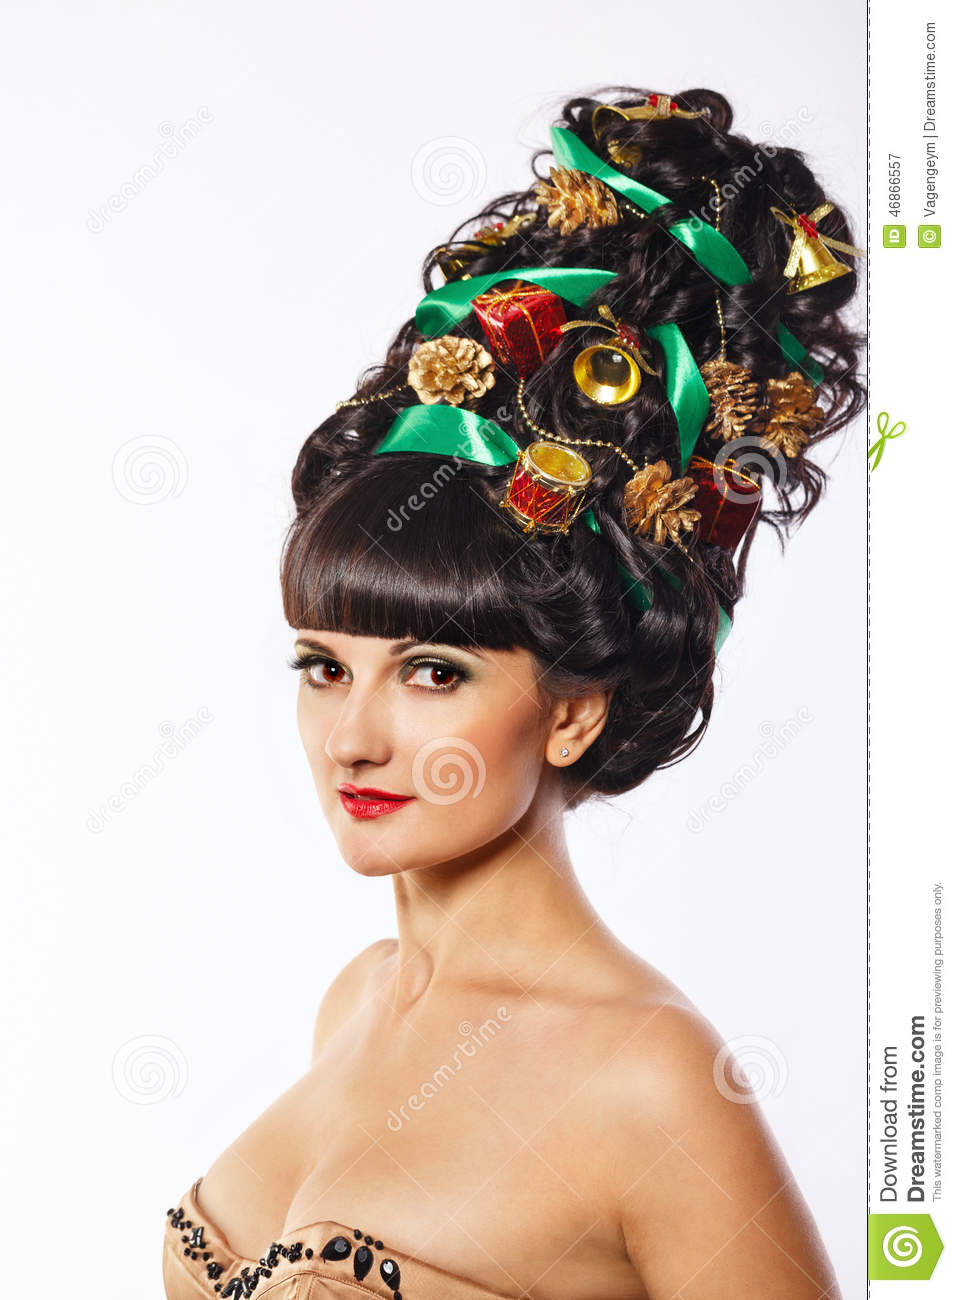 creative style hair and with creative hair style stock image 6867